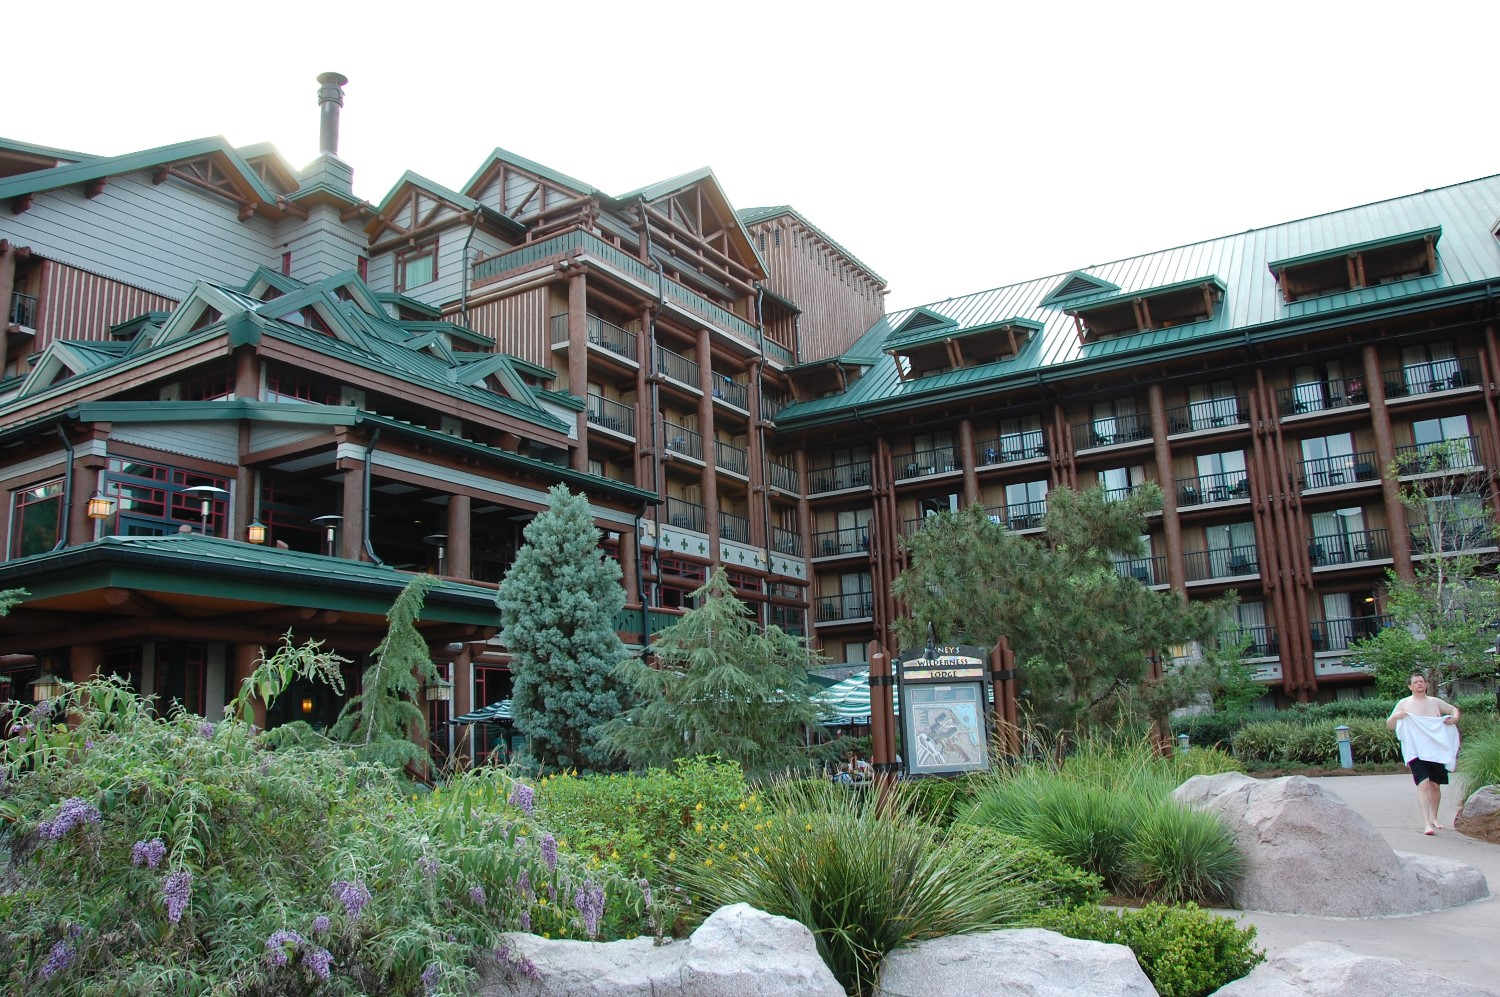 Disney's Wilderness Lodge & Villas - A hotel inspired by the grand lodges of the American National Parks. Disney World / Florida.